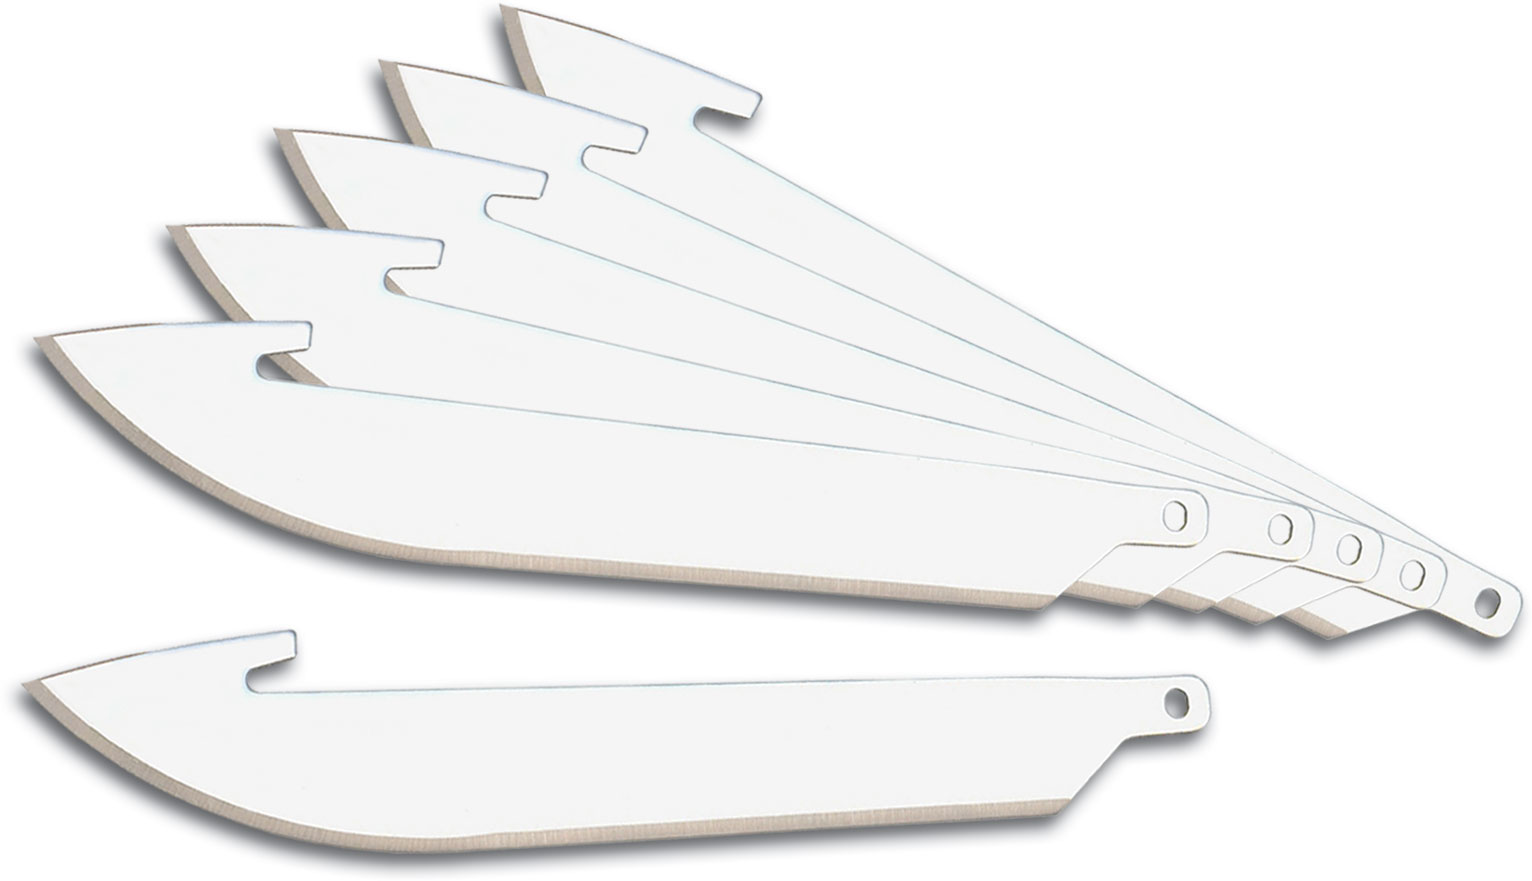 Outdoor Edge 3.5 inch Razor-Lite and Razor-Blaze Pack of 6 Replacement Blades